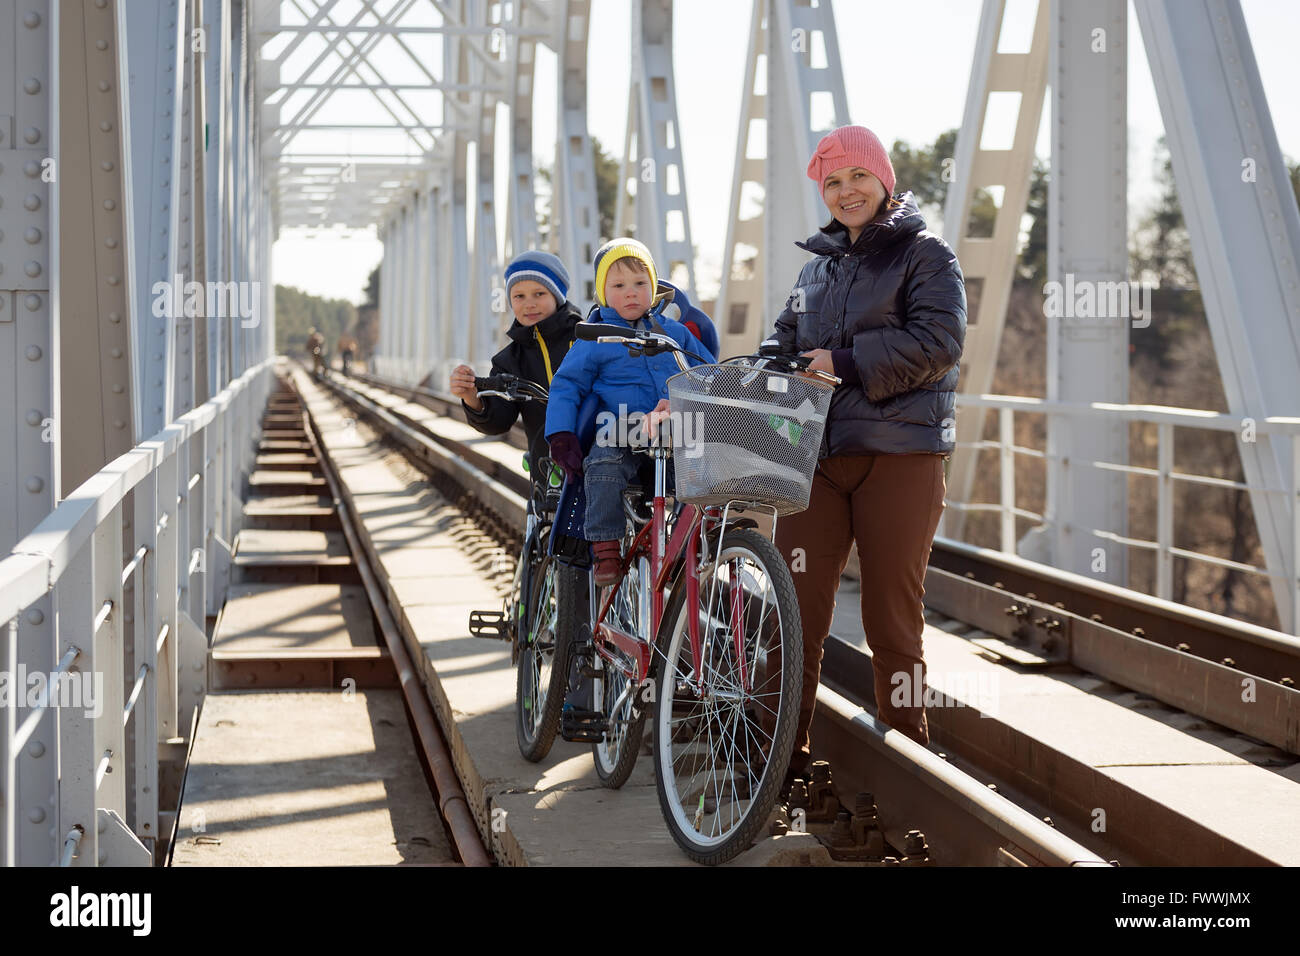 a family of 4 to ride a bike Stock Photo